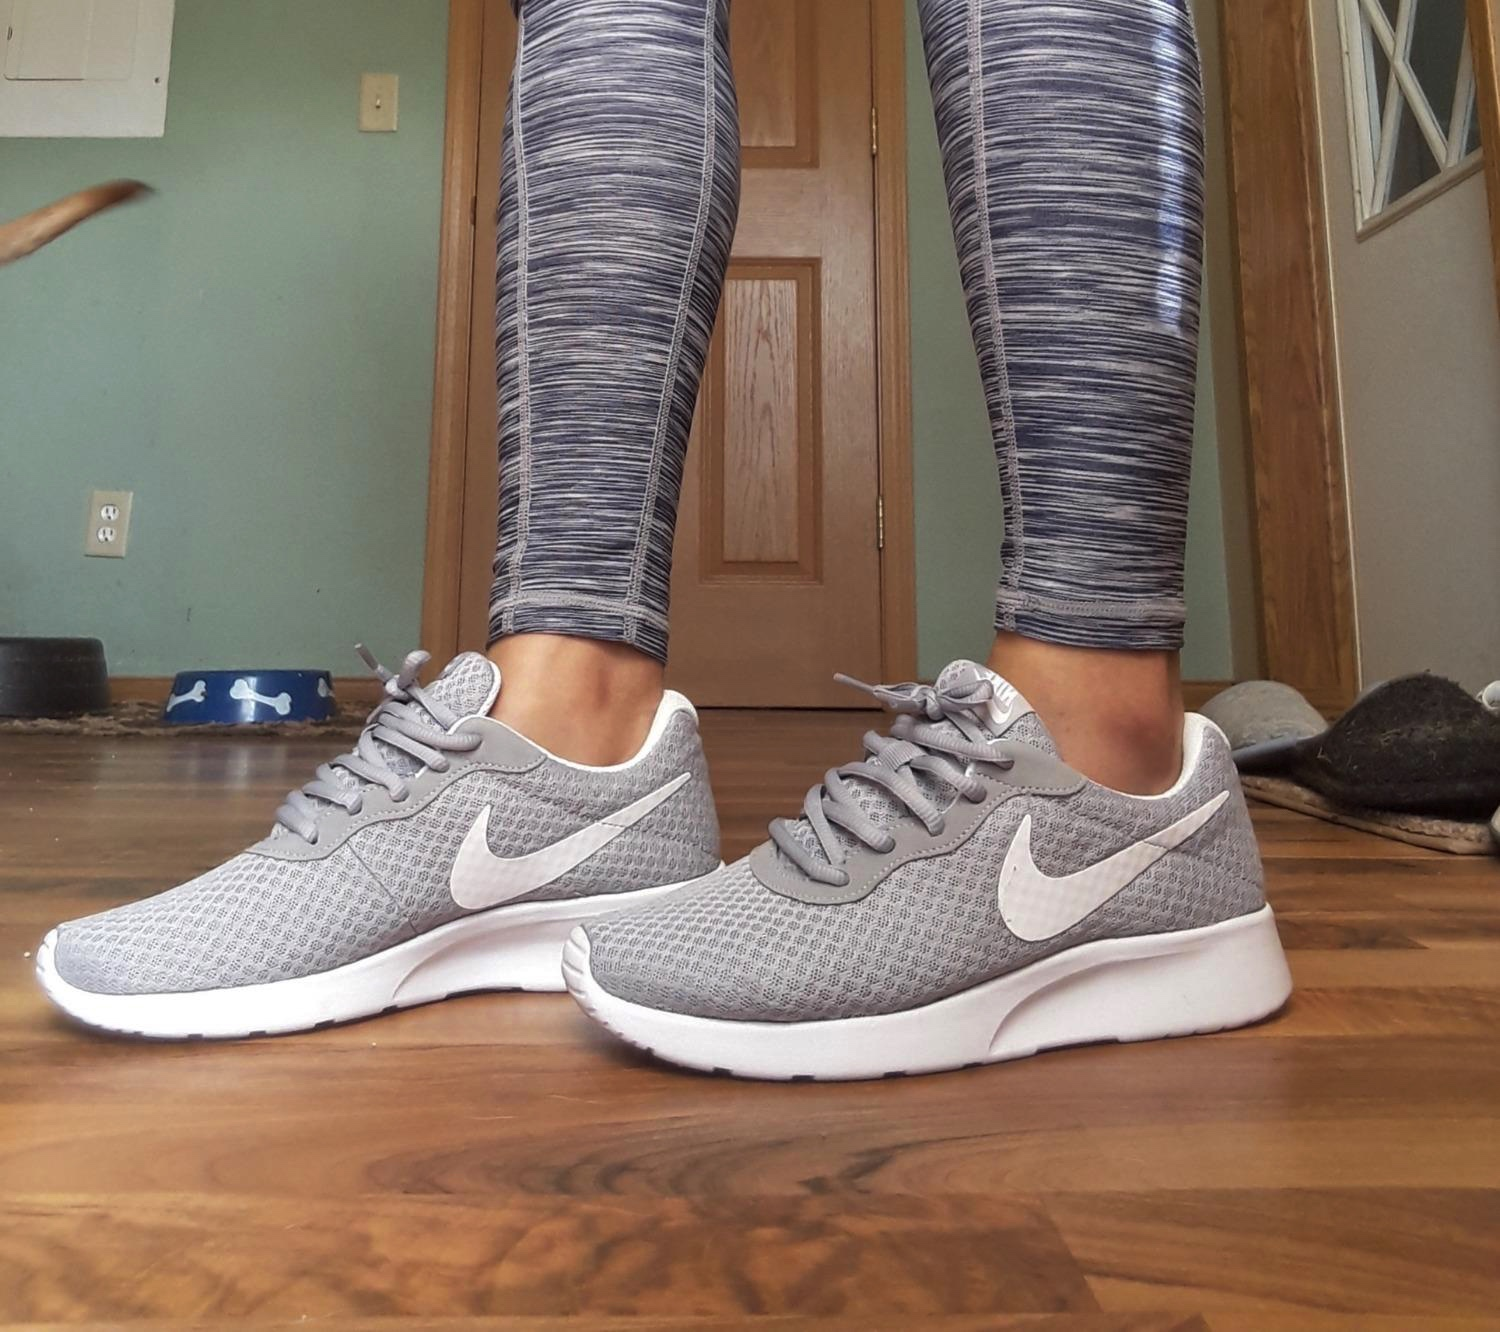 Extra Wide Nike Shoes For Women